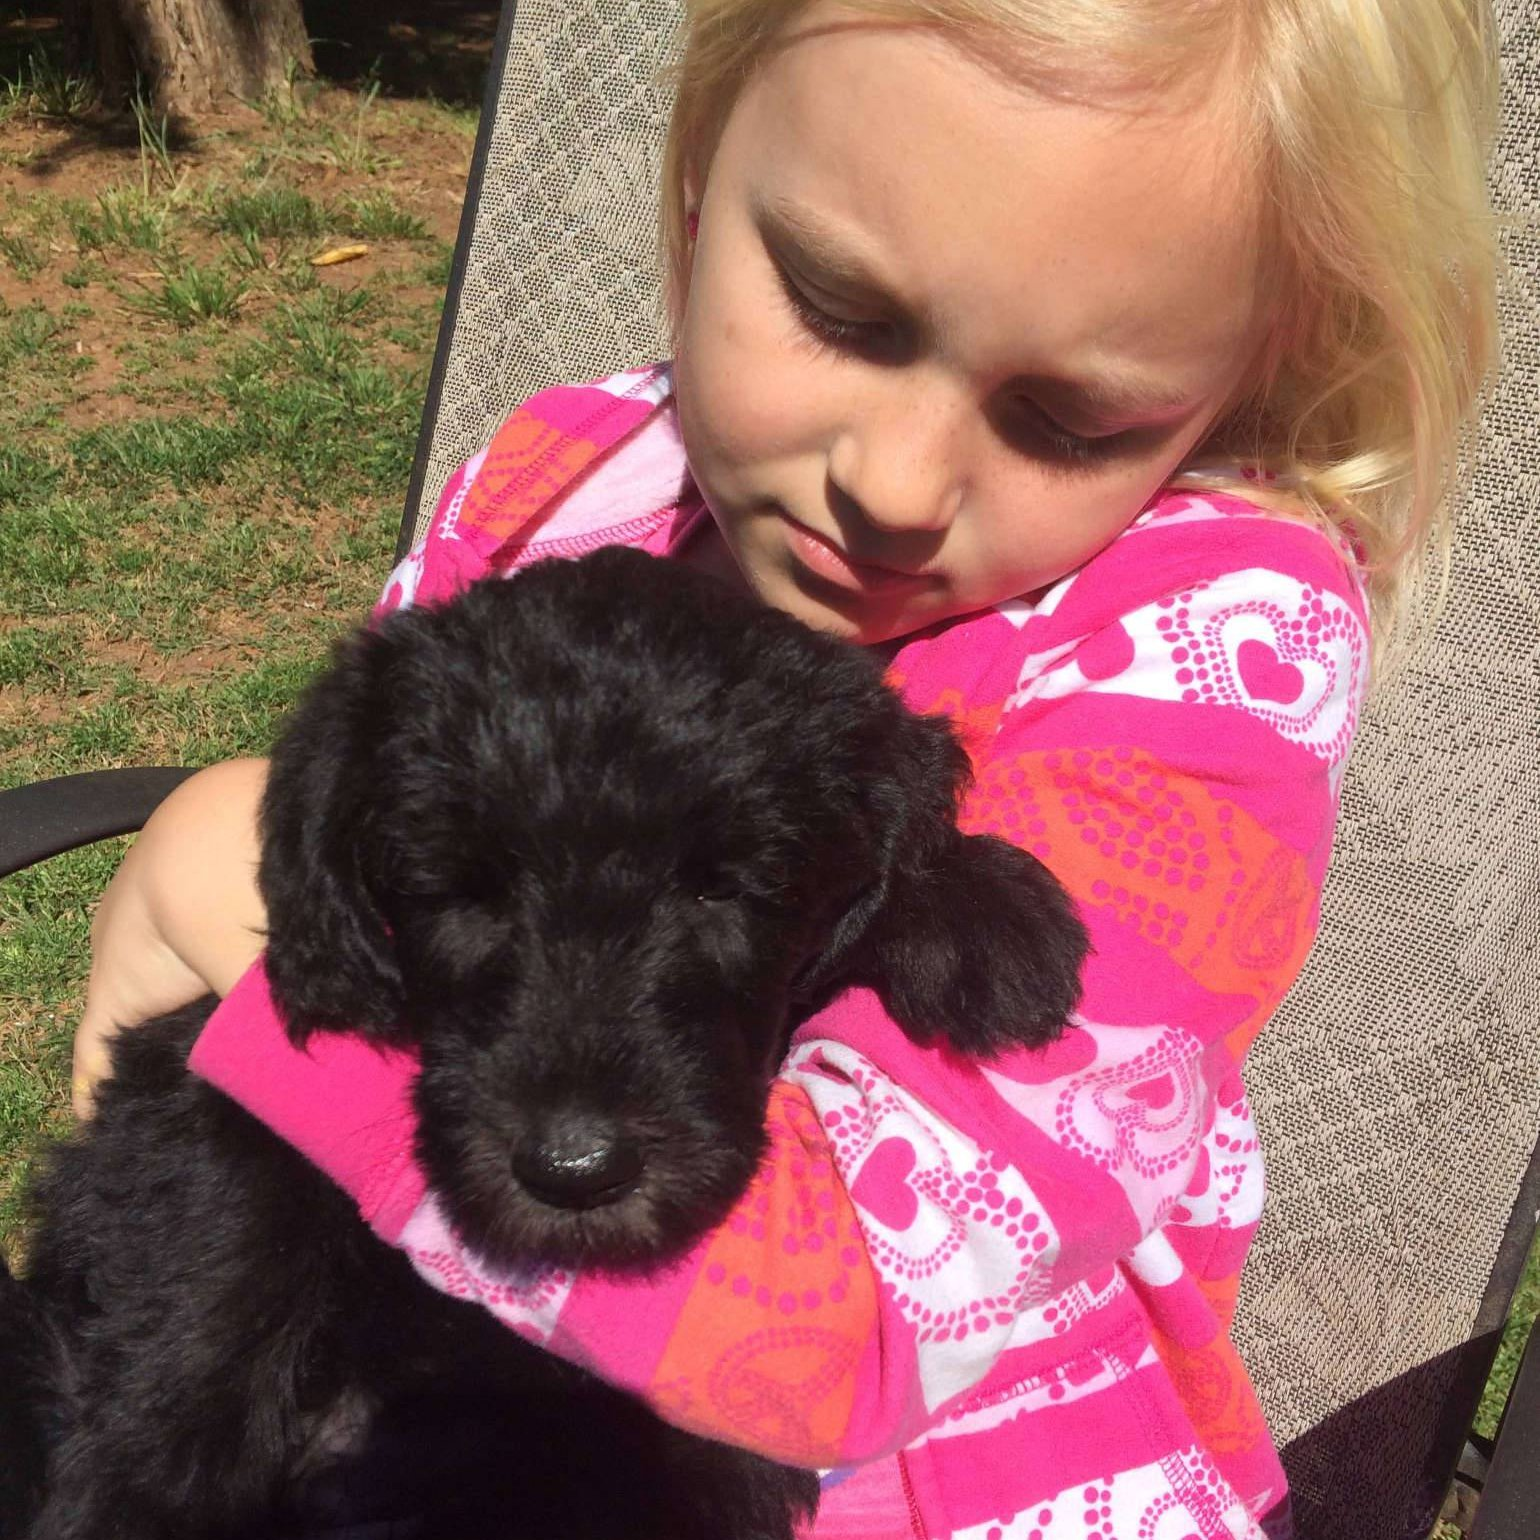 McKinley with black labradoodle puppy